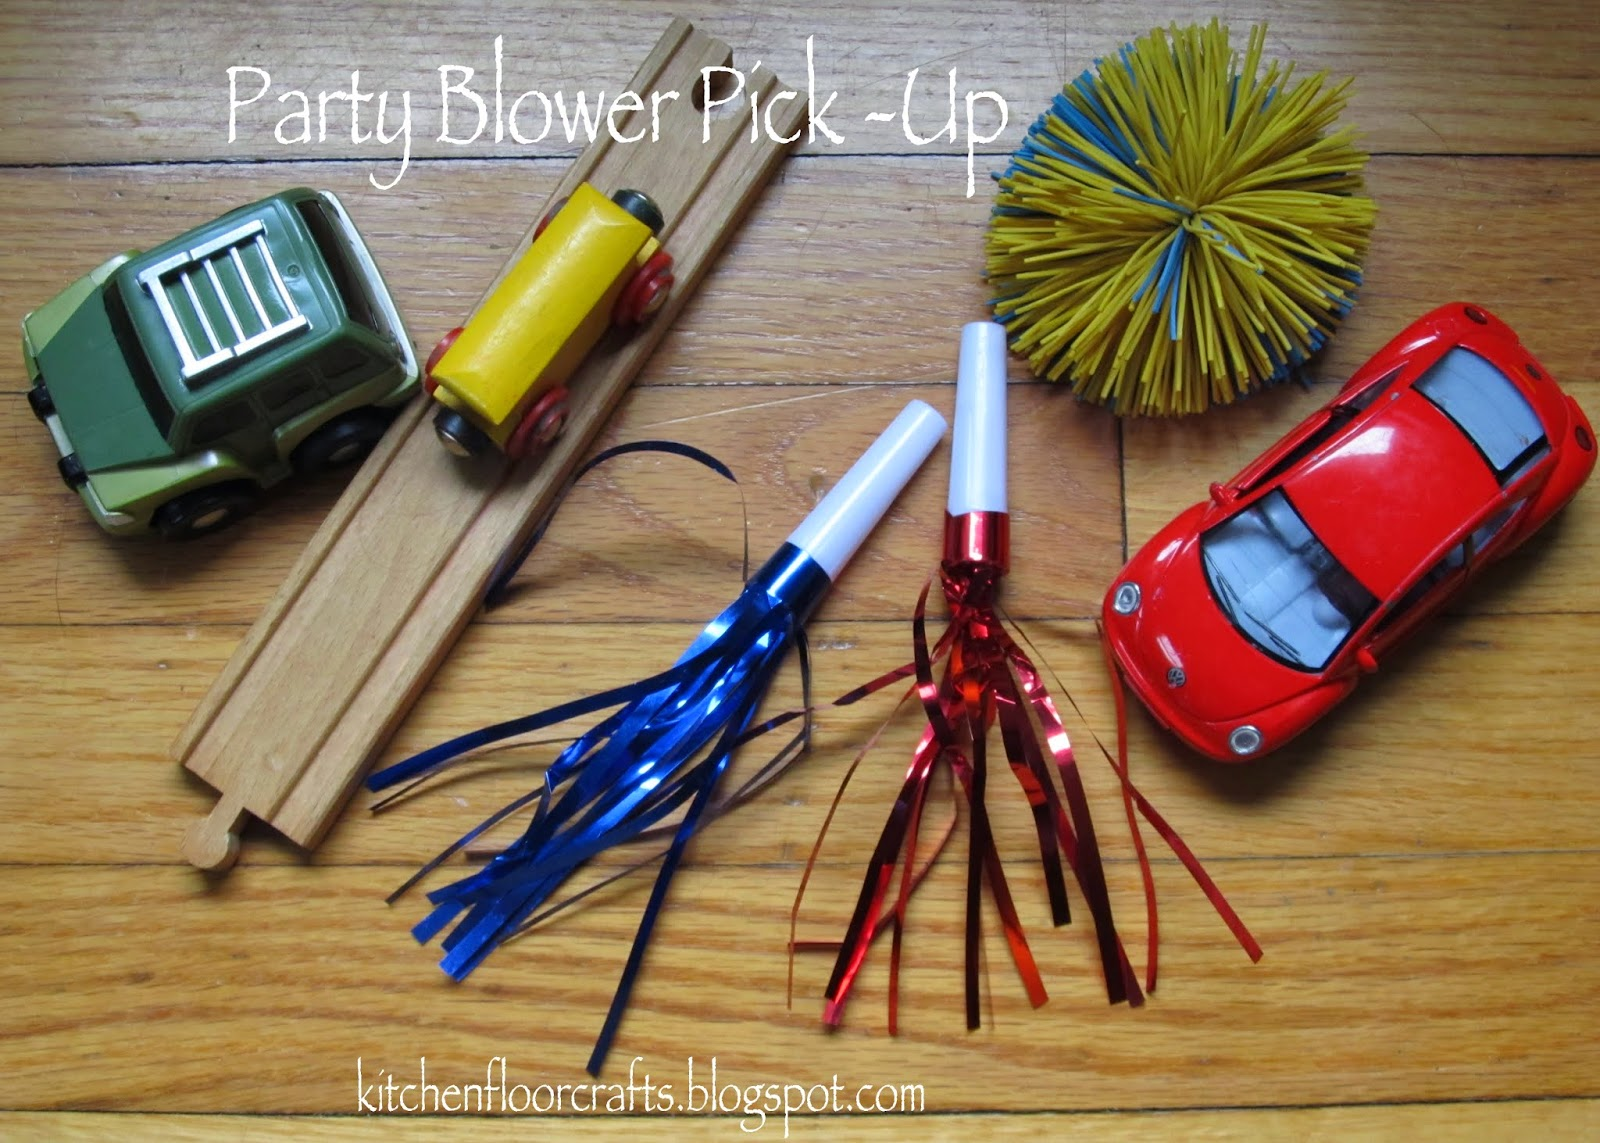 "Party Blower: Kitchen Floor Crafts: ""Party Blower Pick-Up"" Clean Up Trick"